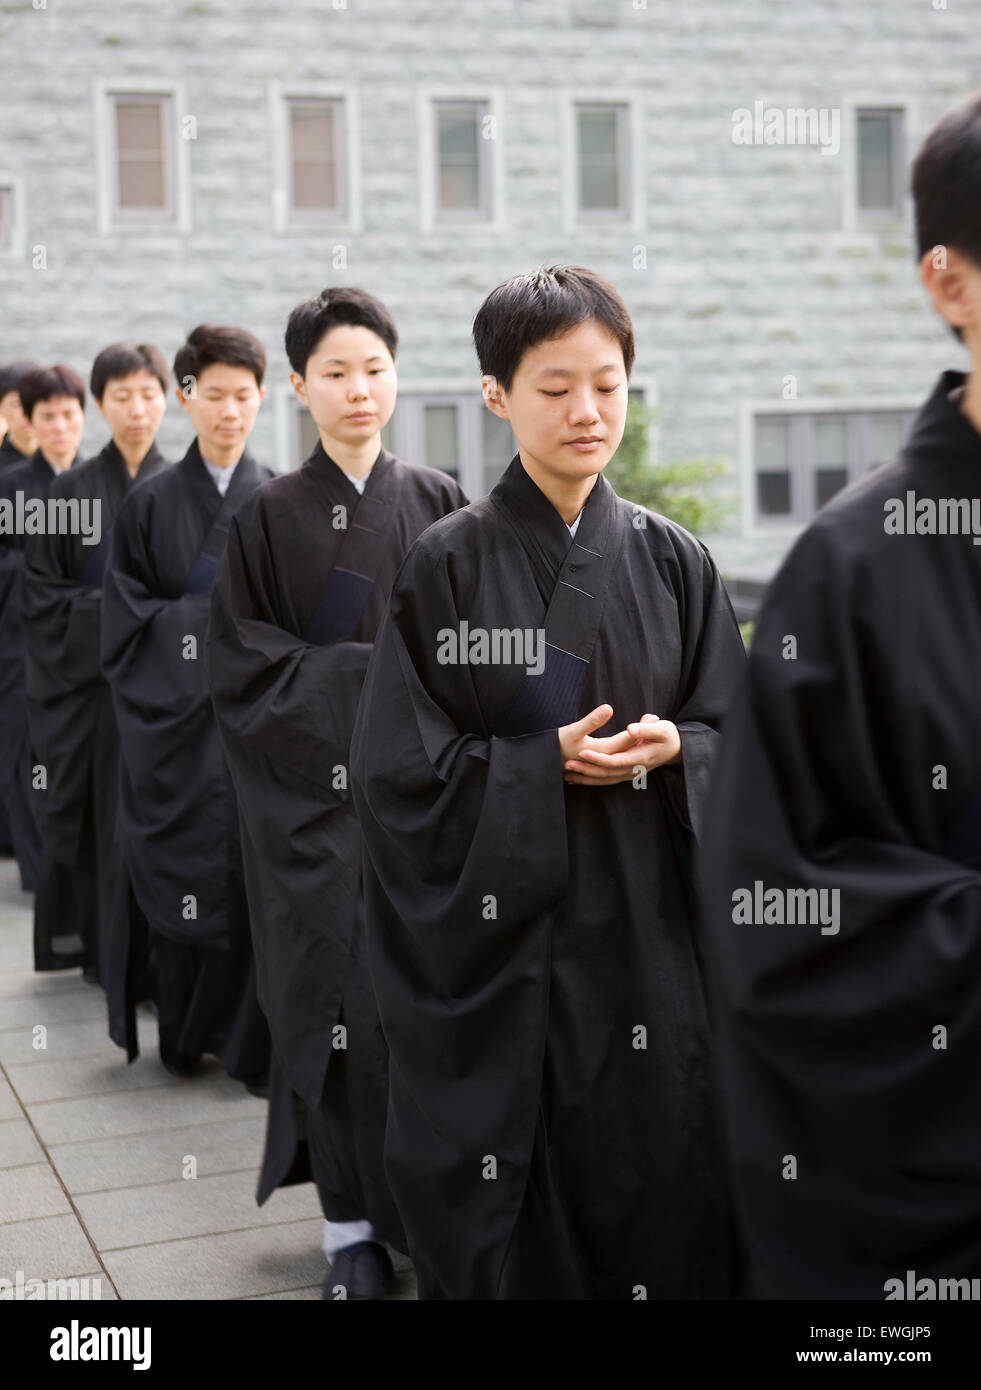 Buddhist monks pray and meditate at the Dharma Drum Mountain monastry. Sanjie Village, Jinshan, Taipei County, Taiwan - Stock Image